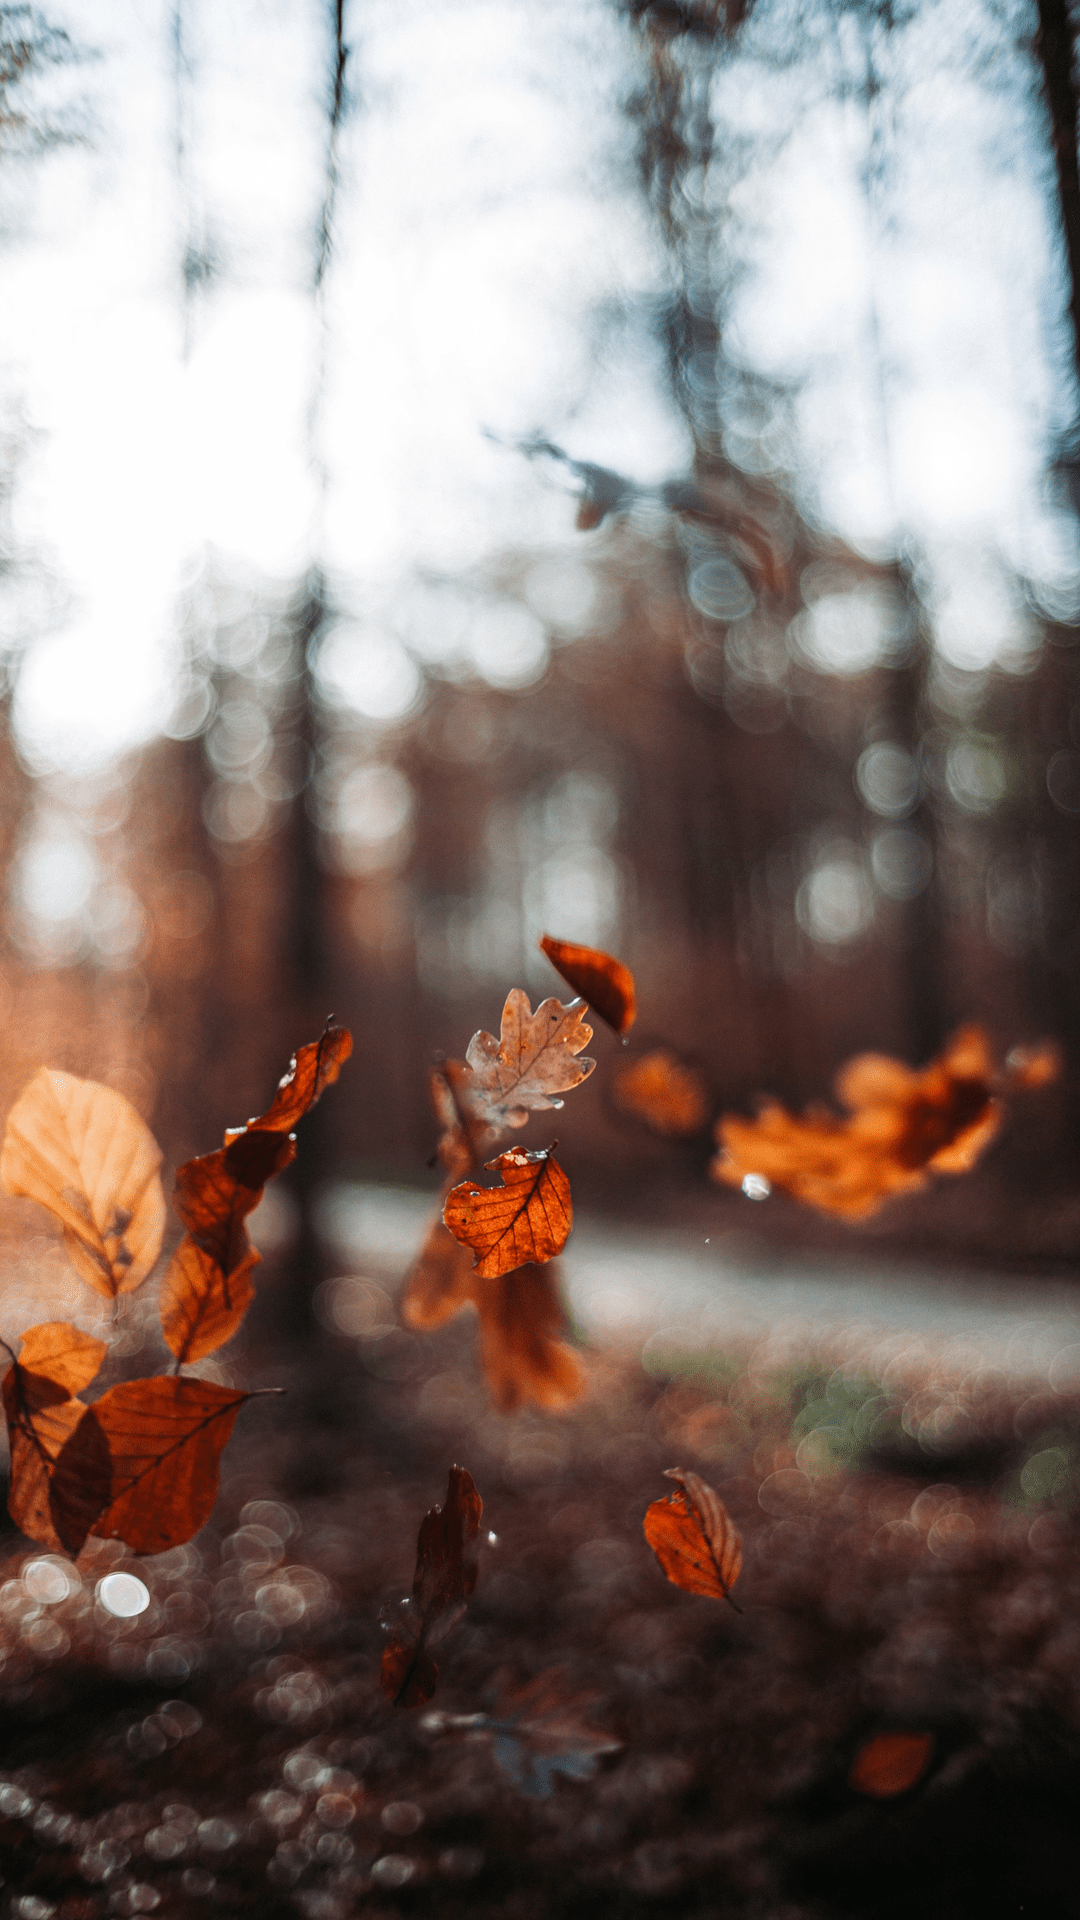 Free HD Autumn Wallpapers